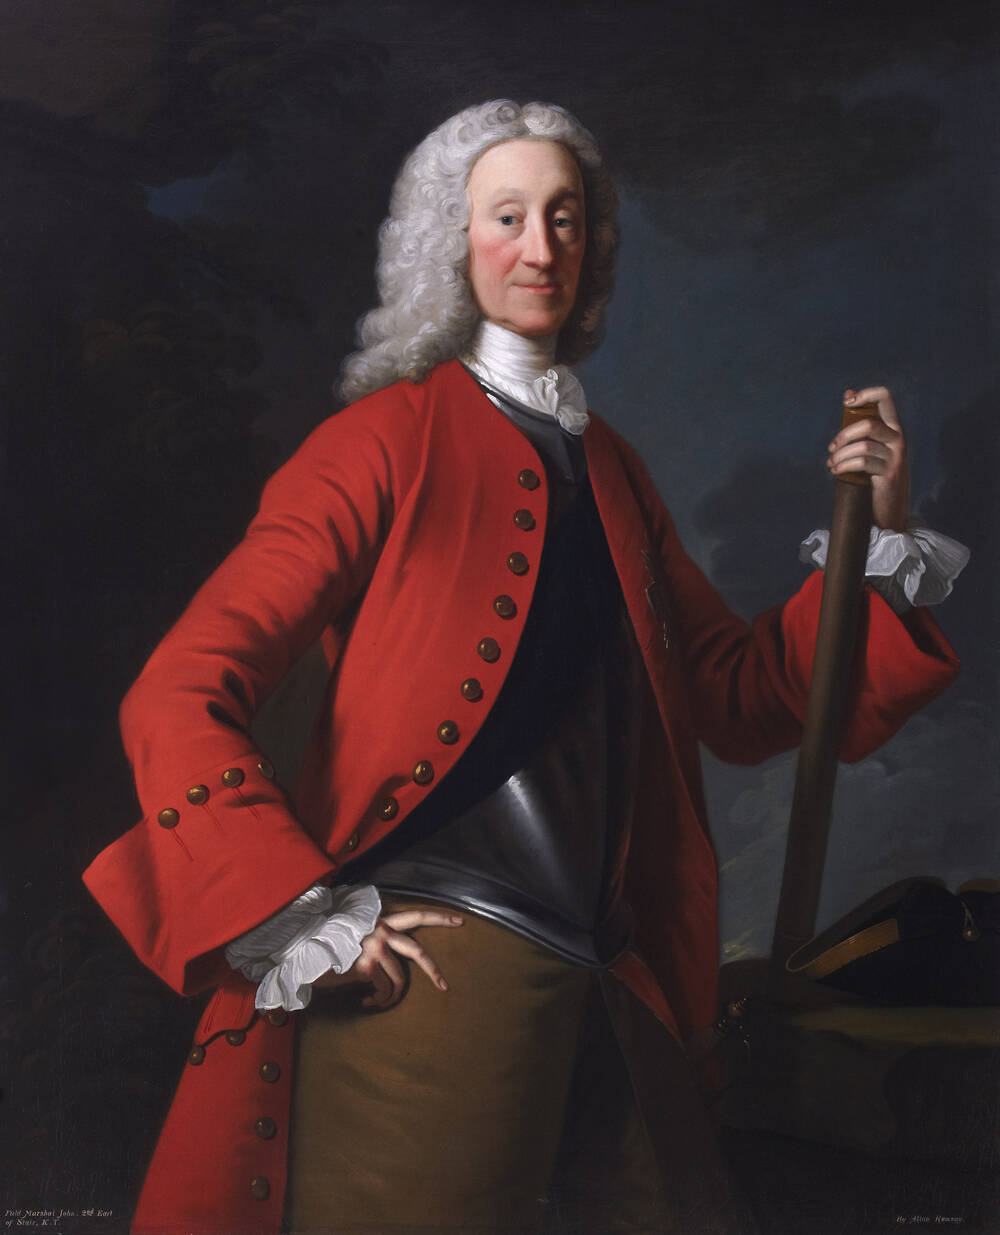 A large portrait of a man dressed in military uniform, with a long red coat. He holds a long sheathed sword in his left hand, and wears a Georgian-style white wig.